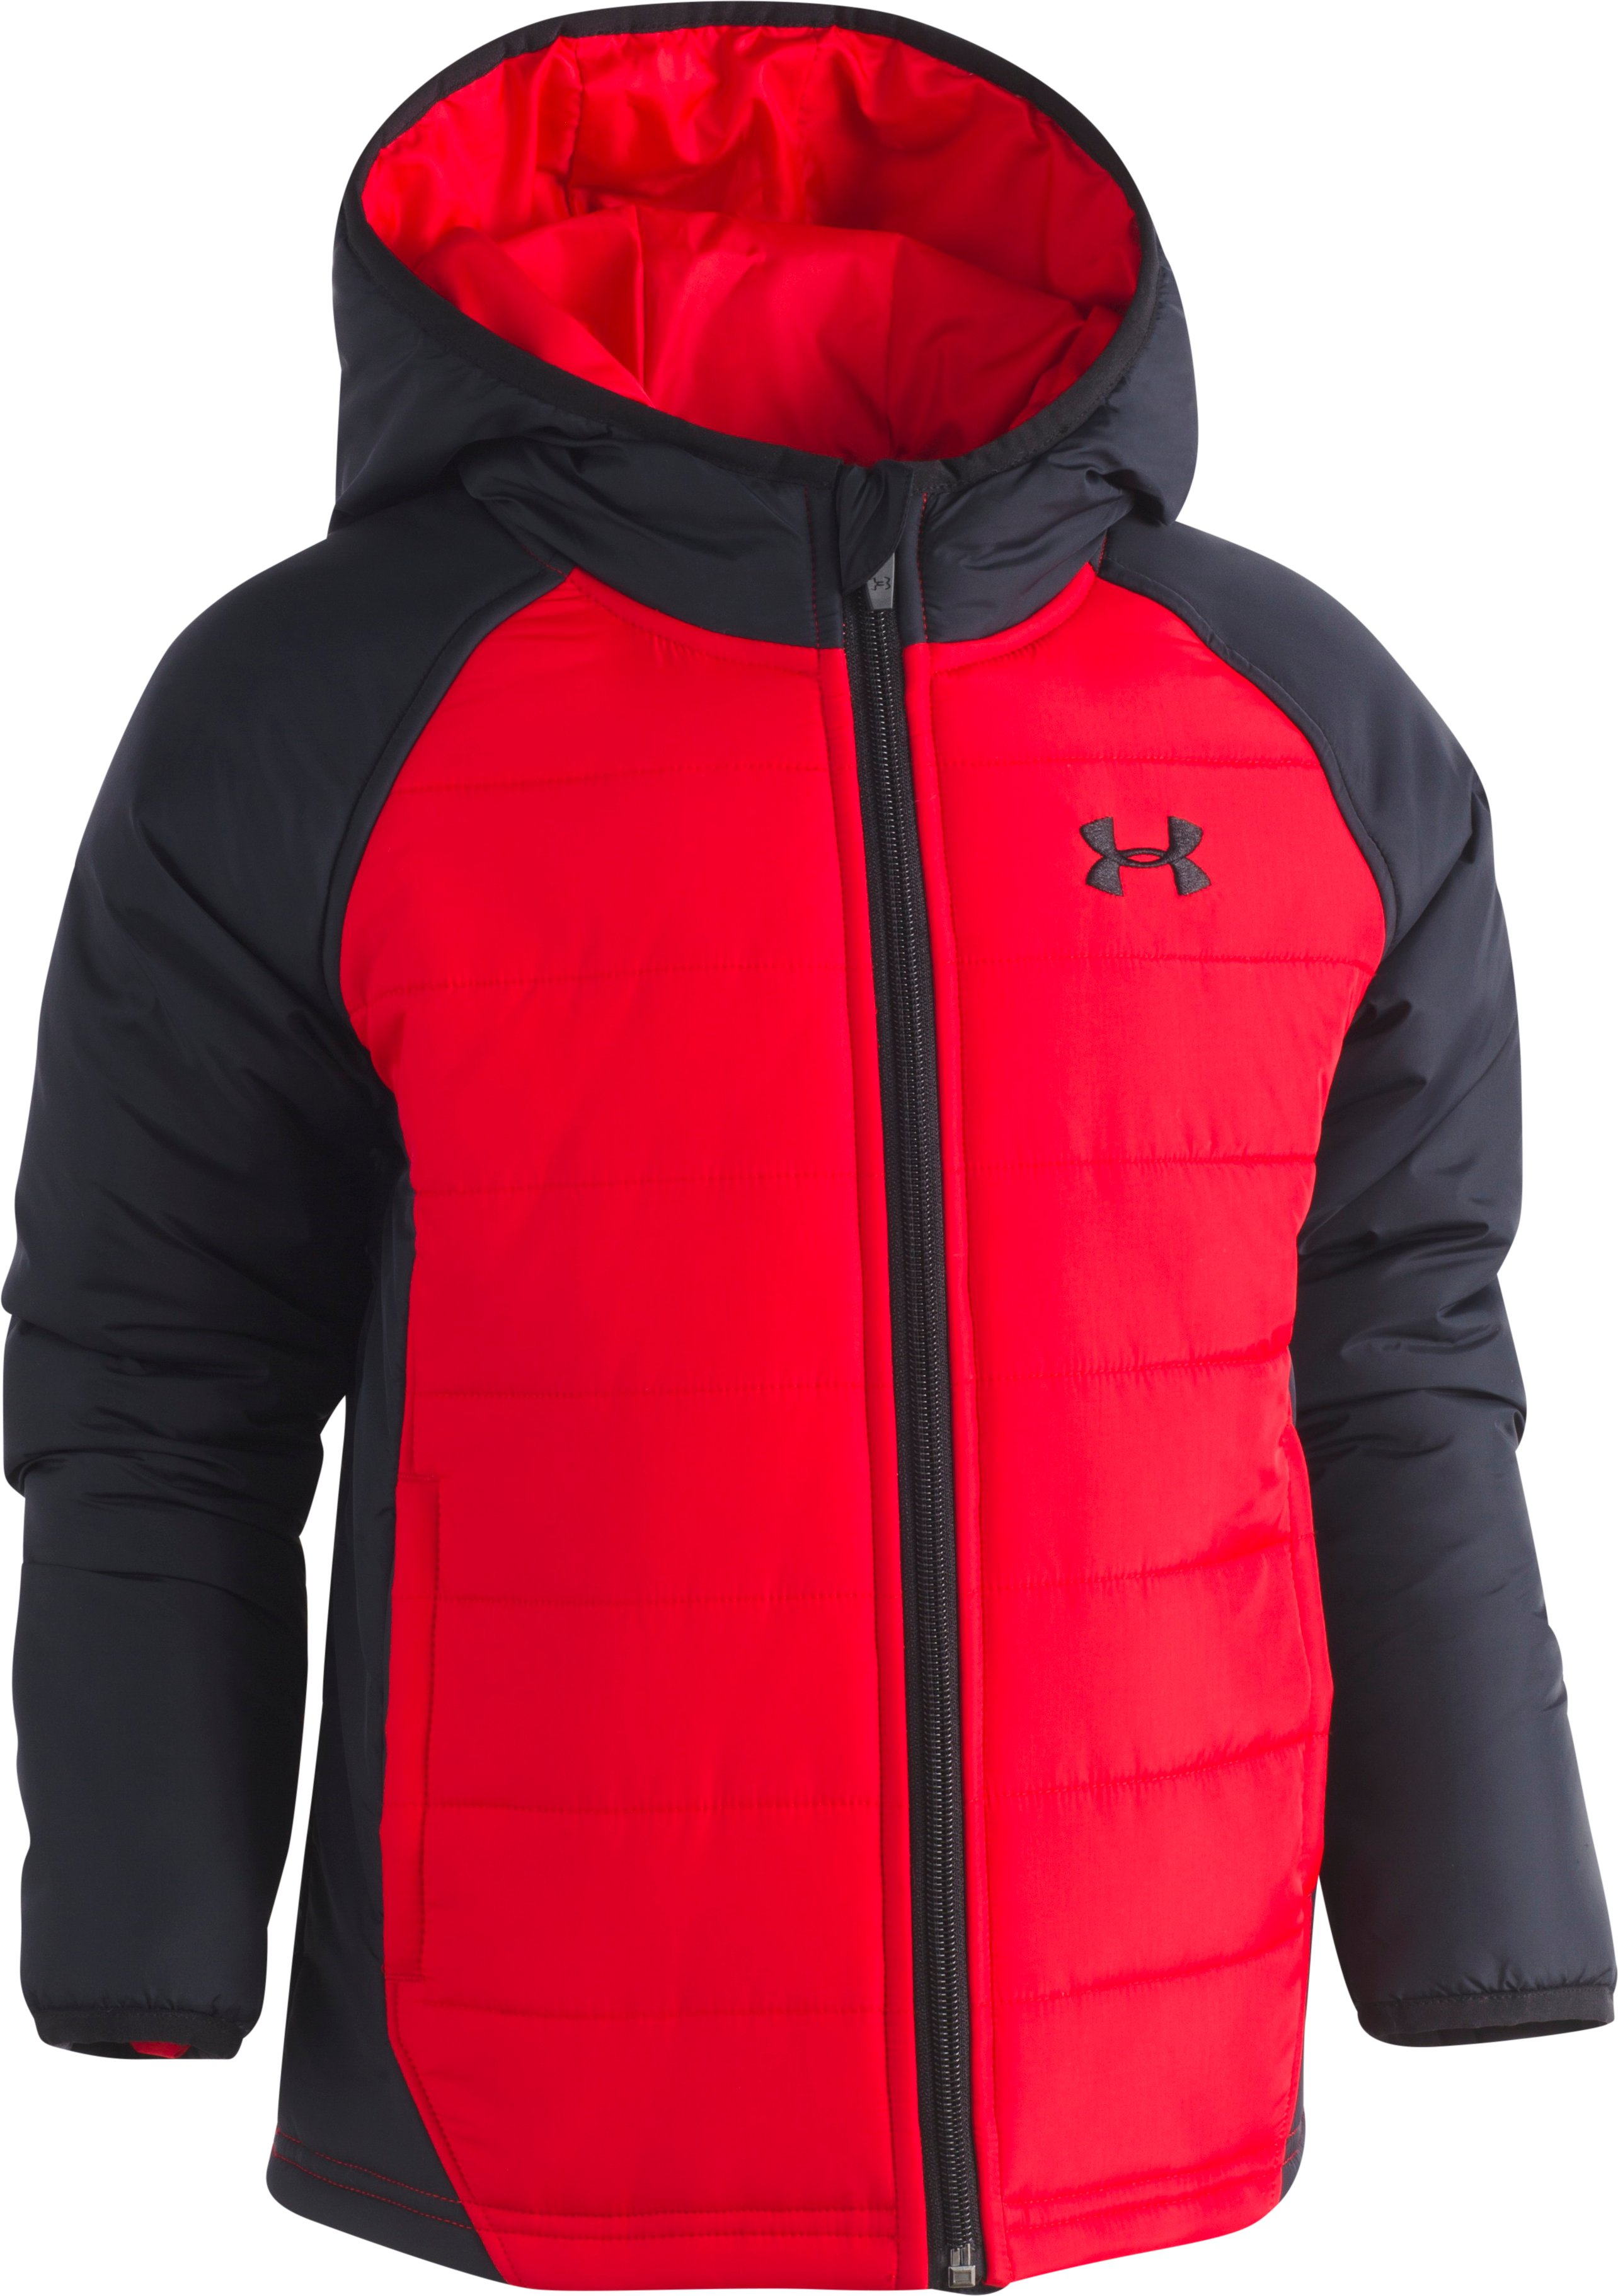 Boys' Toddler UA Werewolf Puffer Jacket, Red